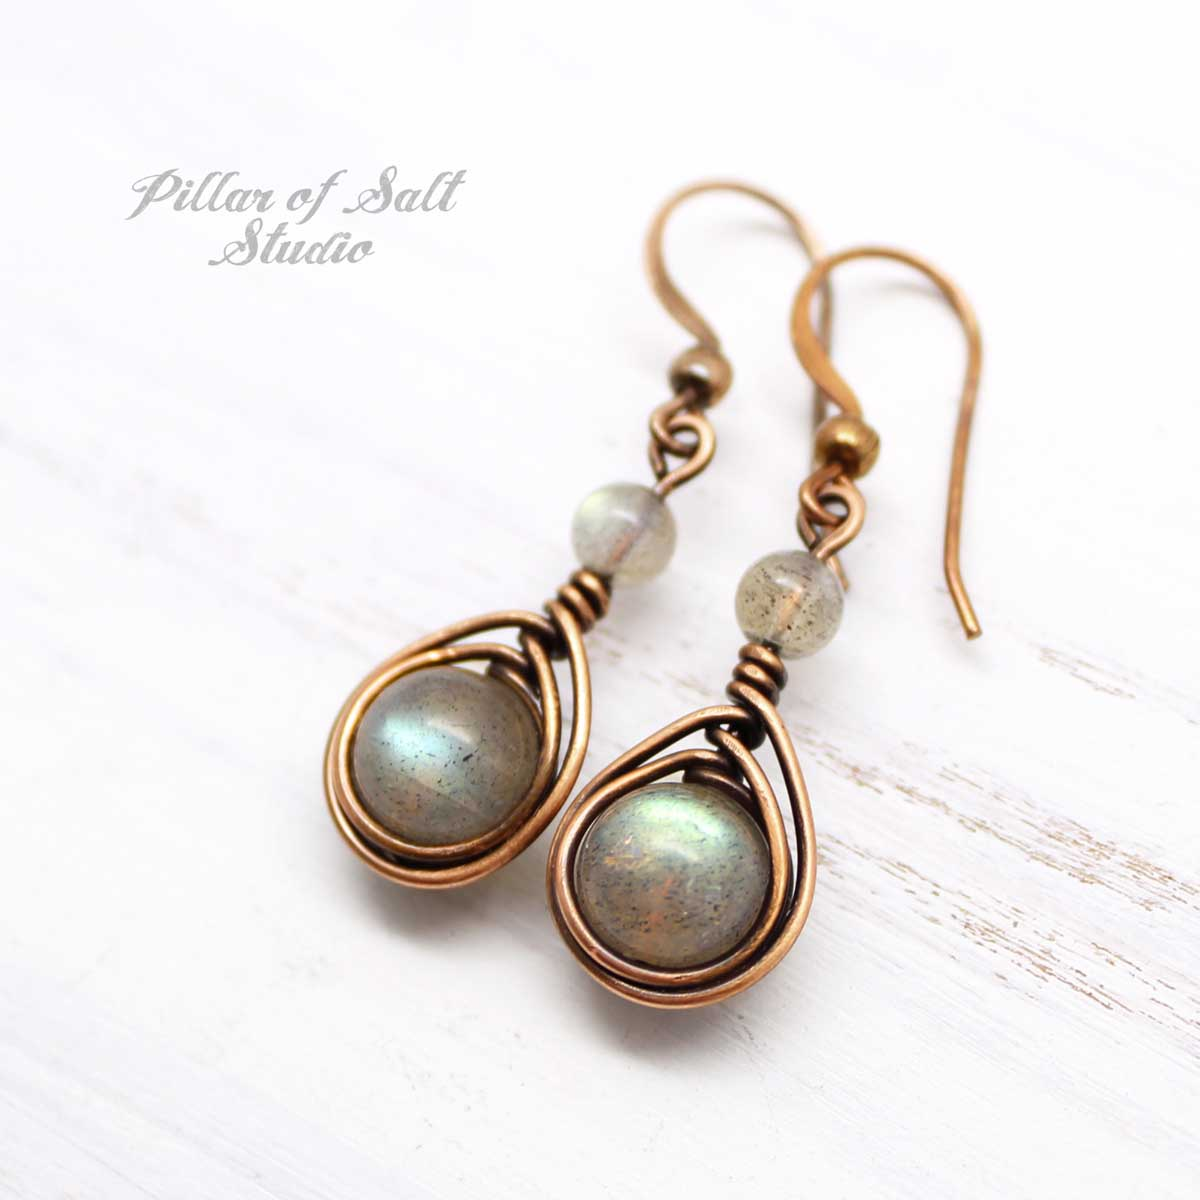 Labradorite earrings in copper by Pillar of Salt Studio